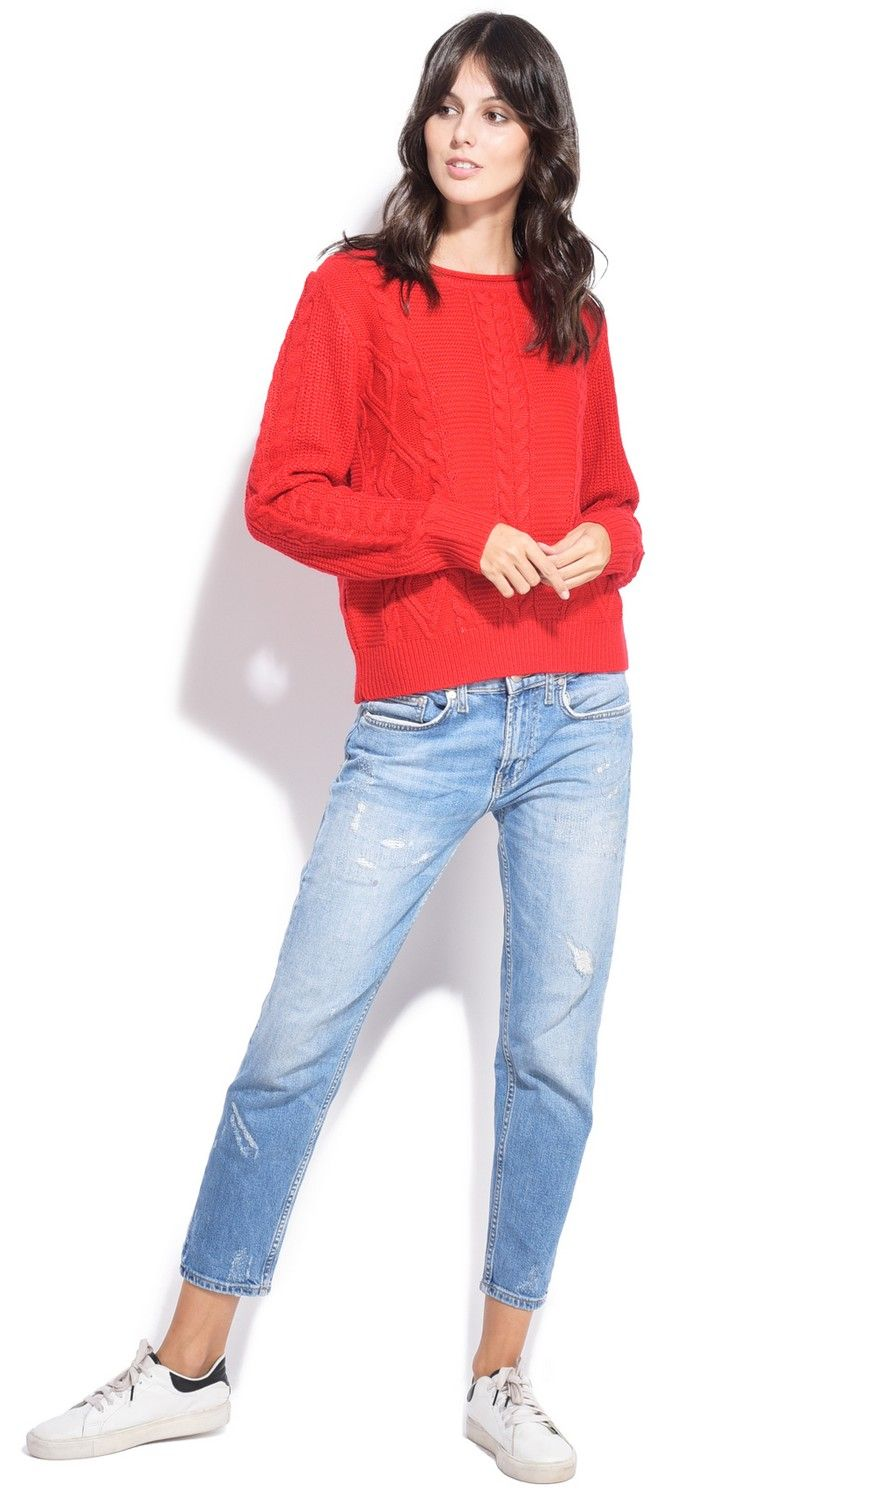 William De Faye Round Neck Twisted Yarn Sweater in Red